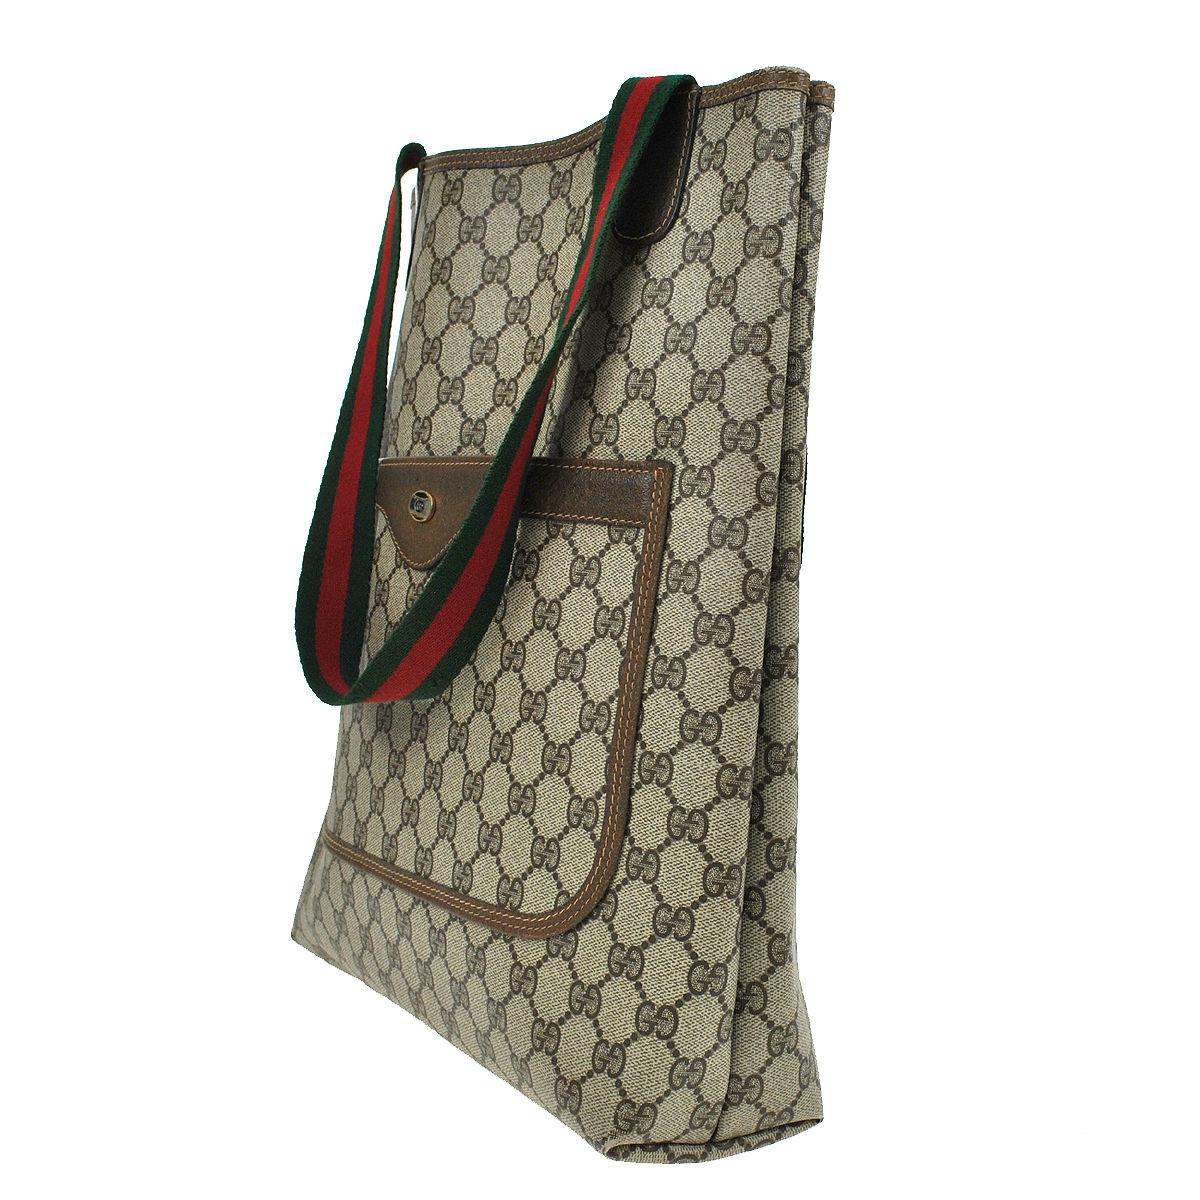 gucci louis vuitton vertu One of the oldest names in luxury, louis vuitton opened his first store in paris in 1854 since then, the french fashion house has become known for its iconic.